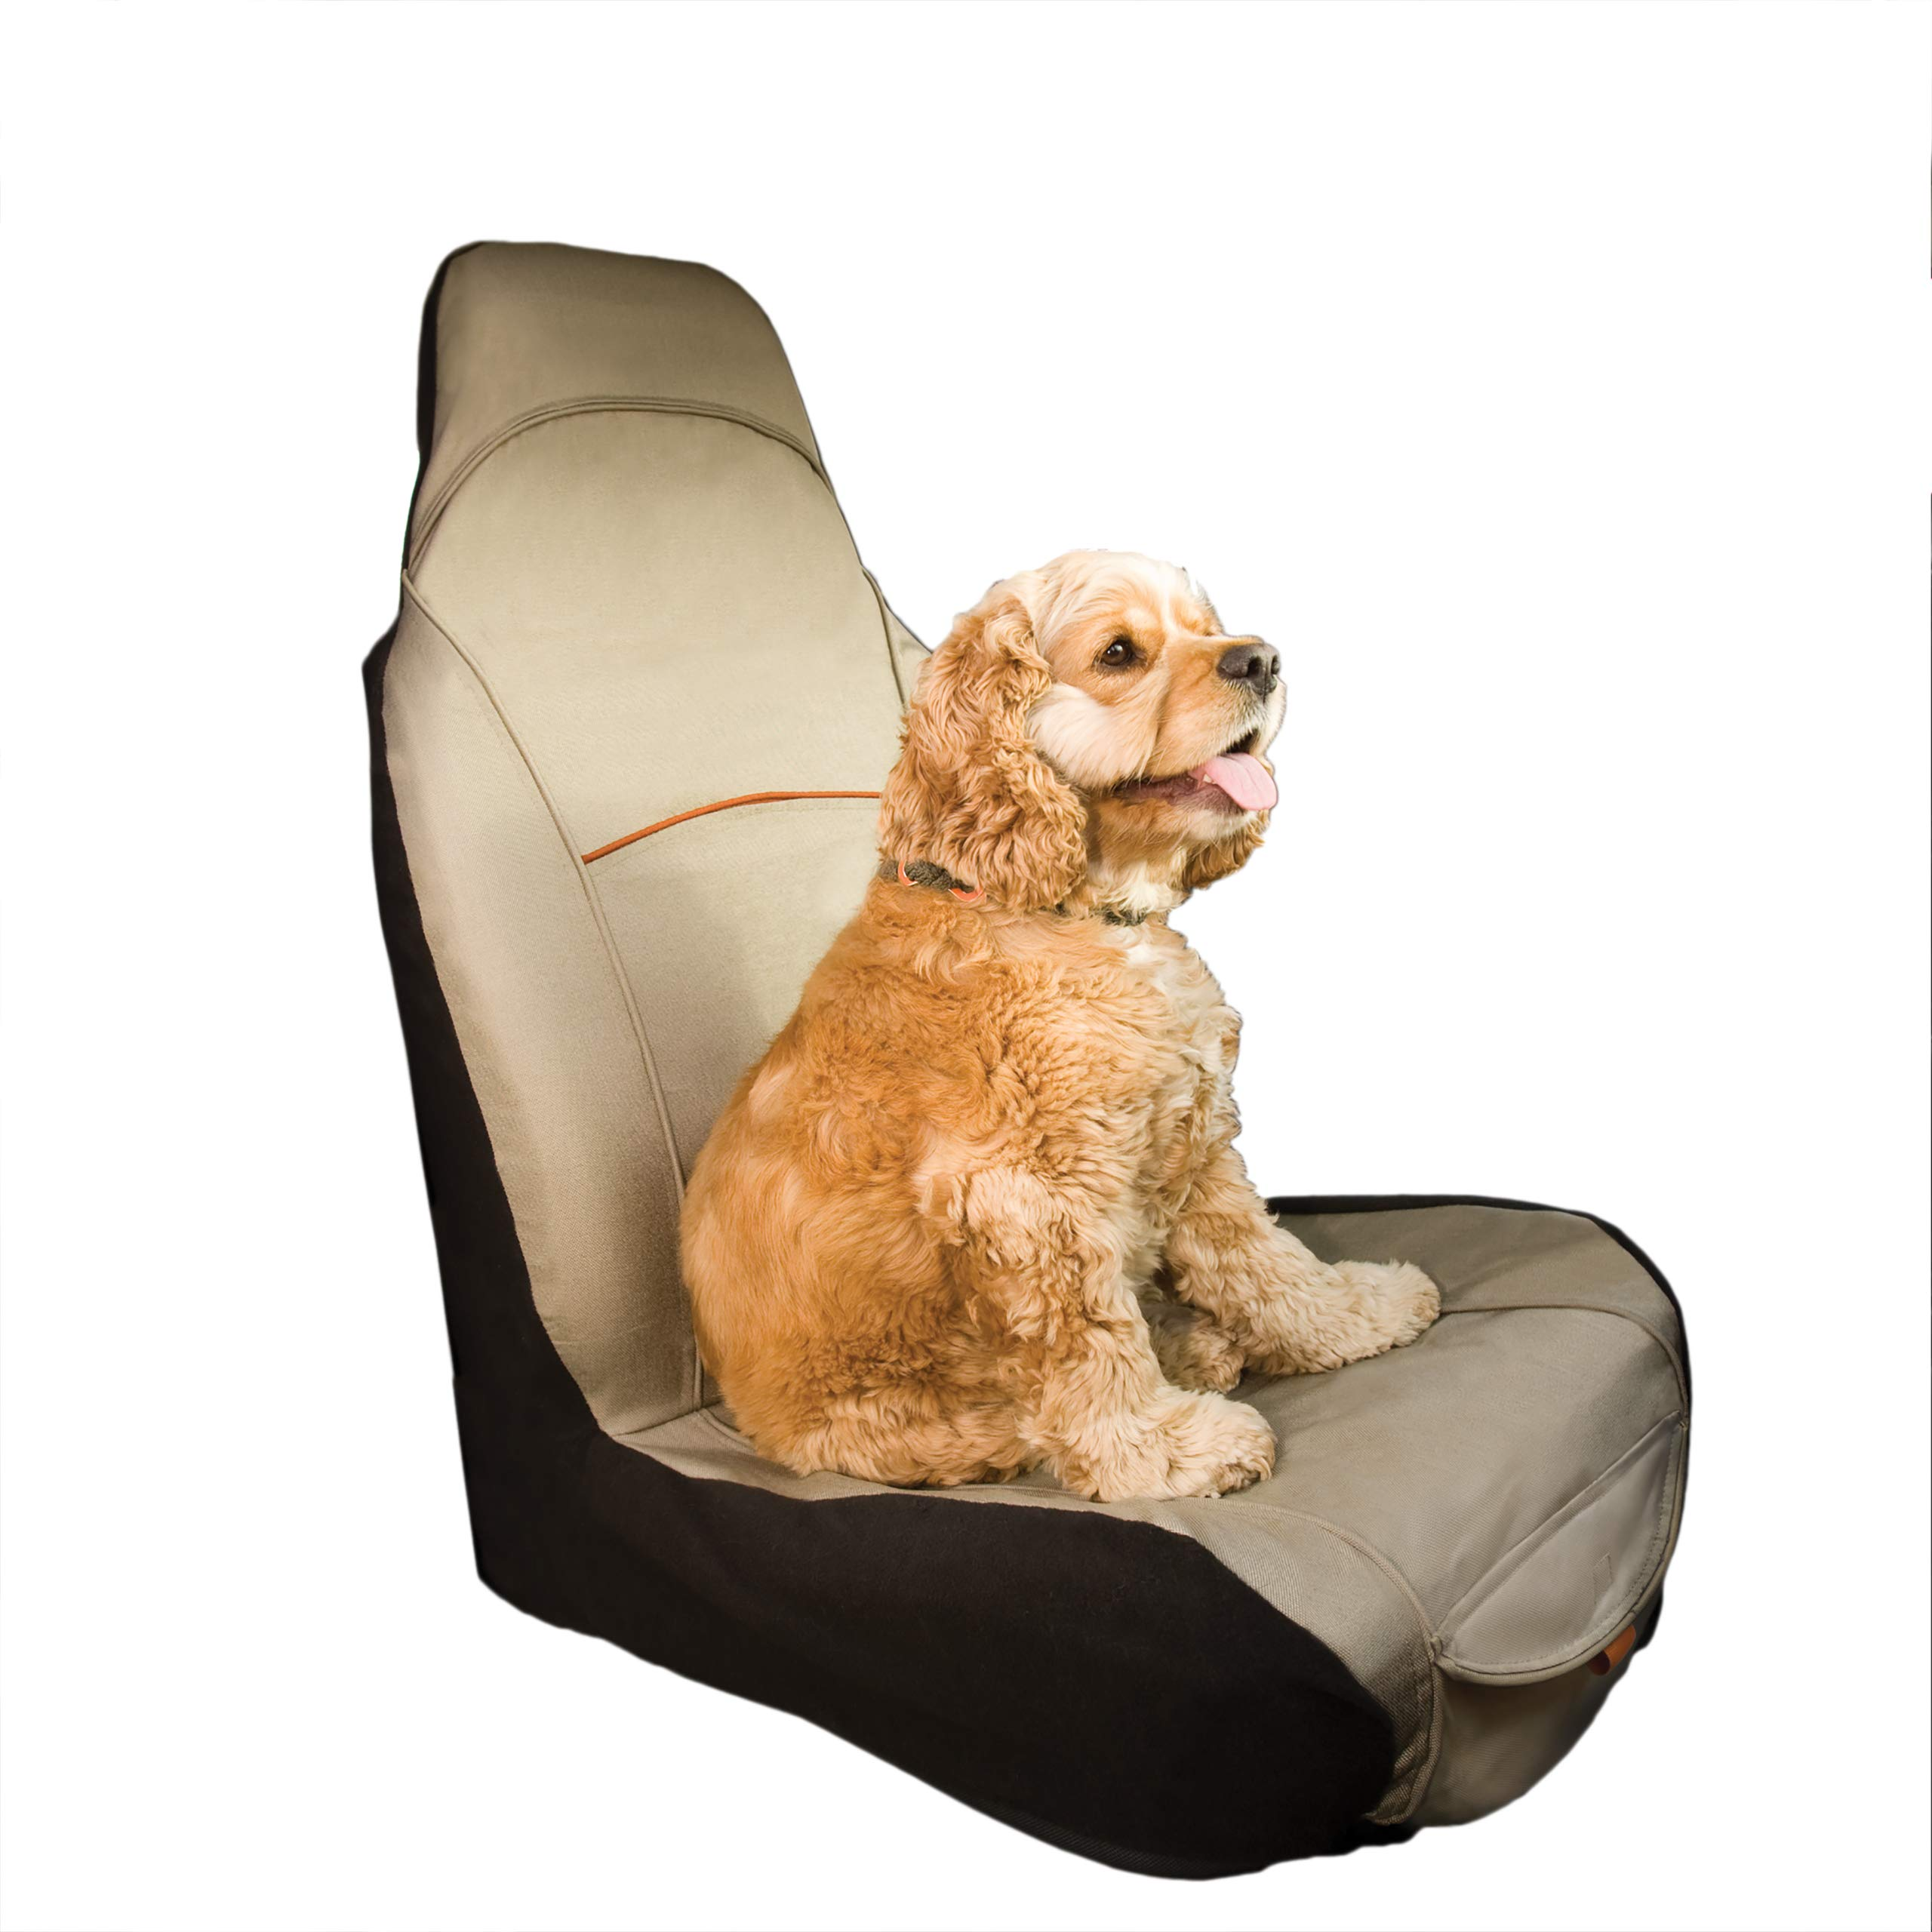 Kurgo CoPilot Bucket Seat Cover for Dogs -Waterproof, Stain Resistant & Machine Washable by Kurgo